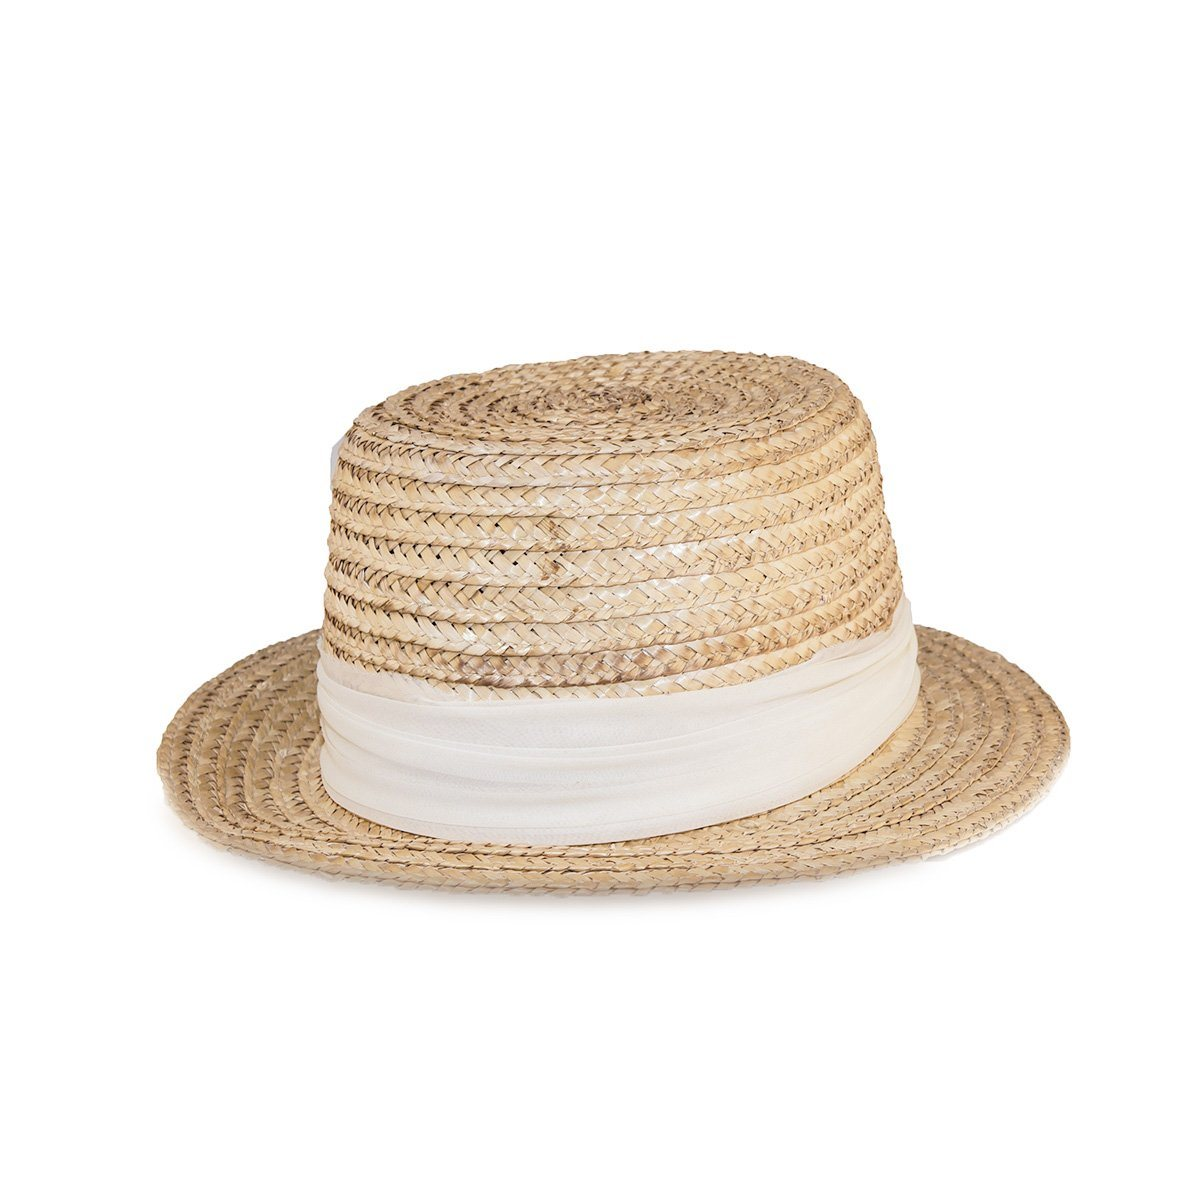 950e8500142 Vintage 1950s Happy Cappers Straw Sun Hat